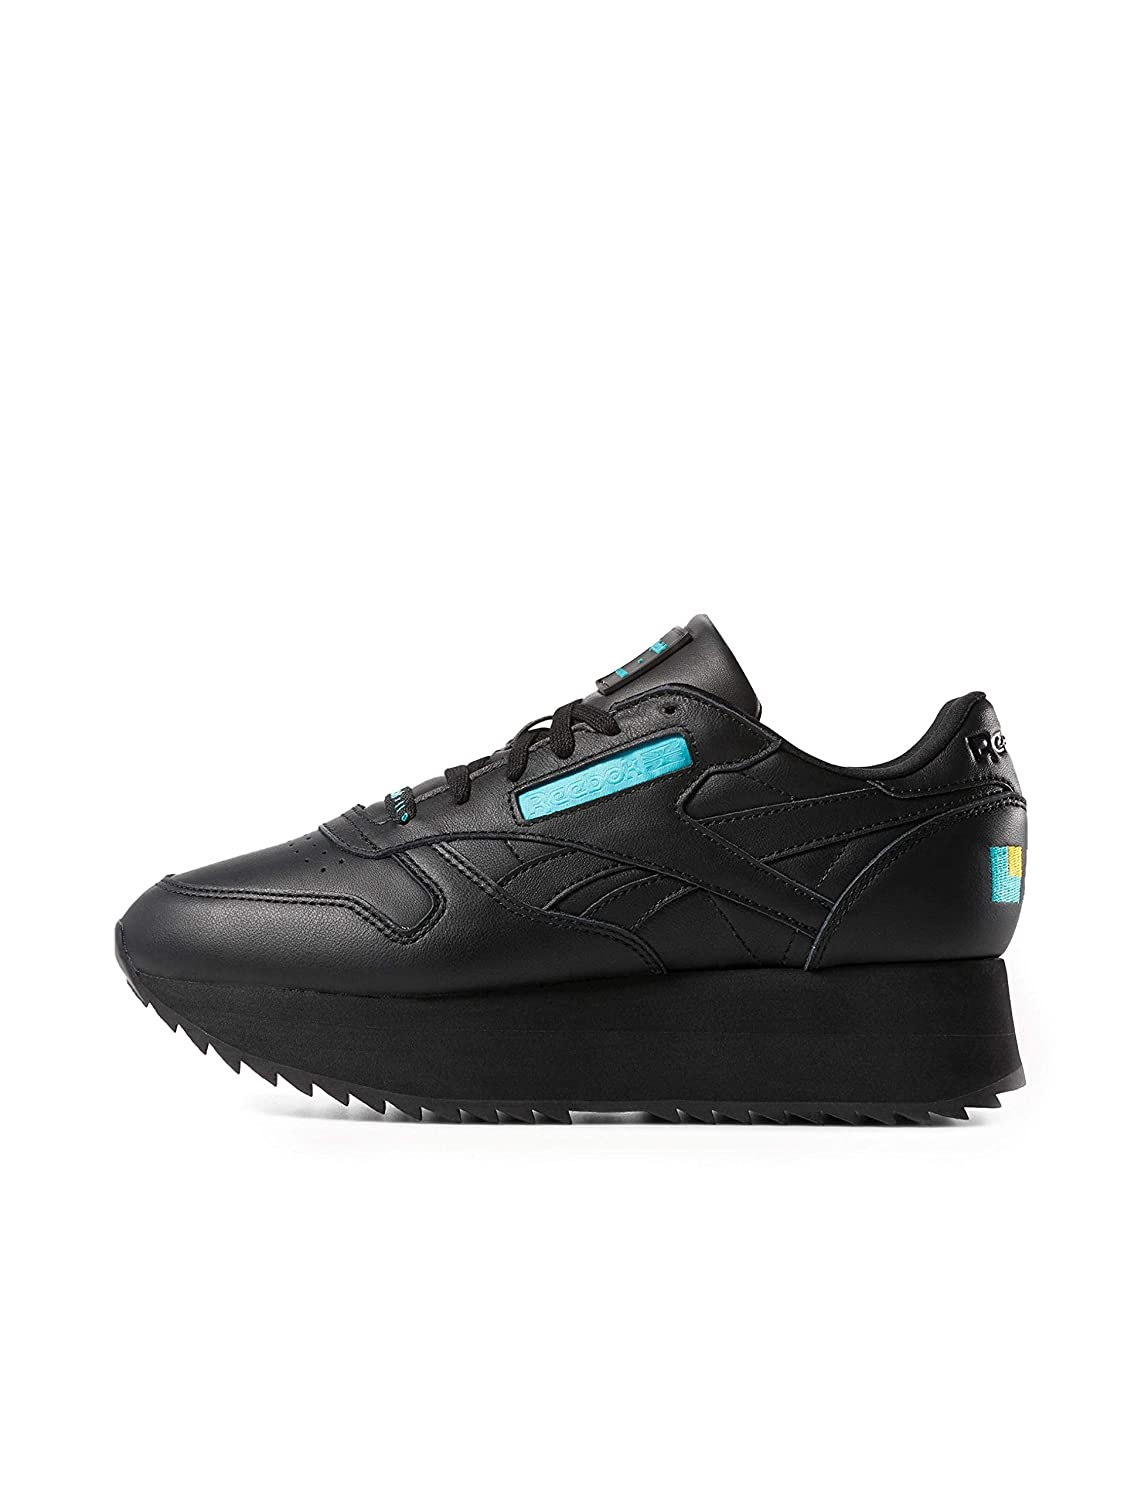 Reebok Damen Turnschuhe Classic Leather Double schwarz 42